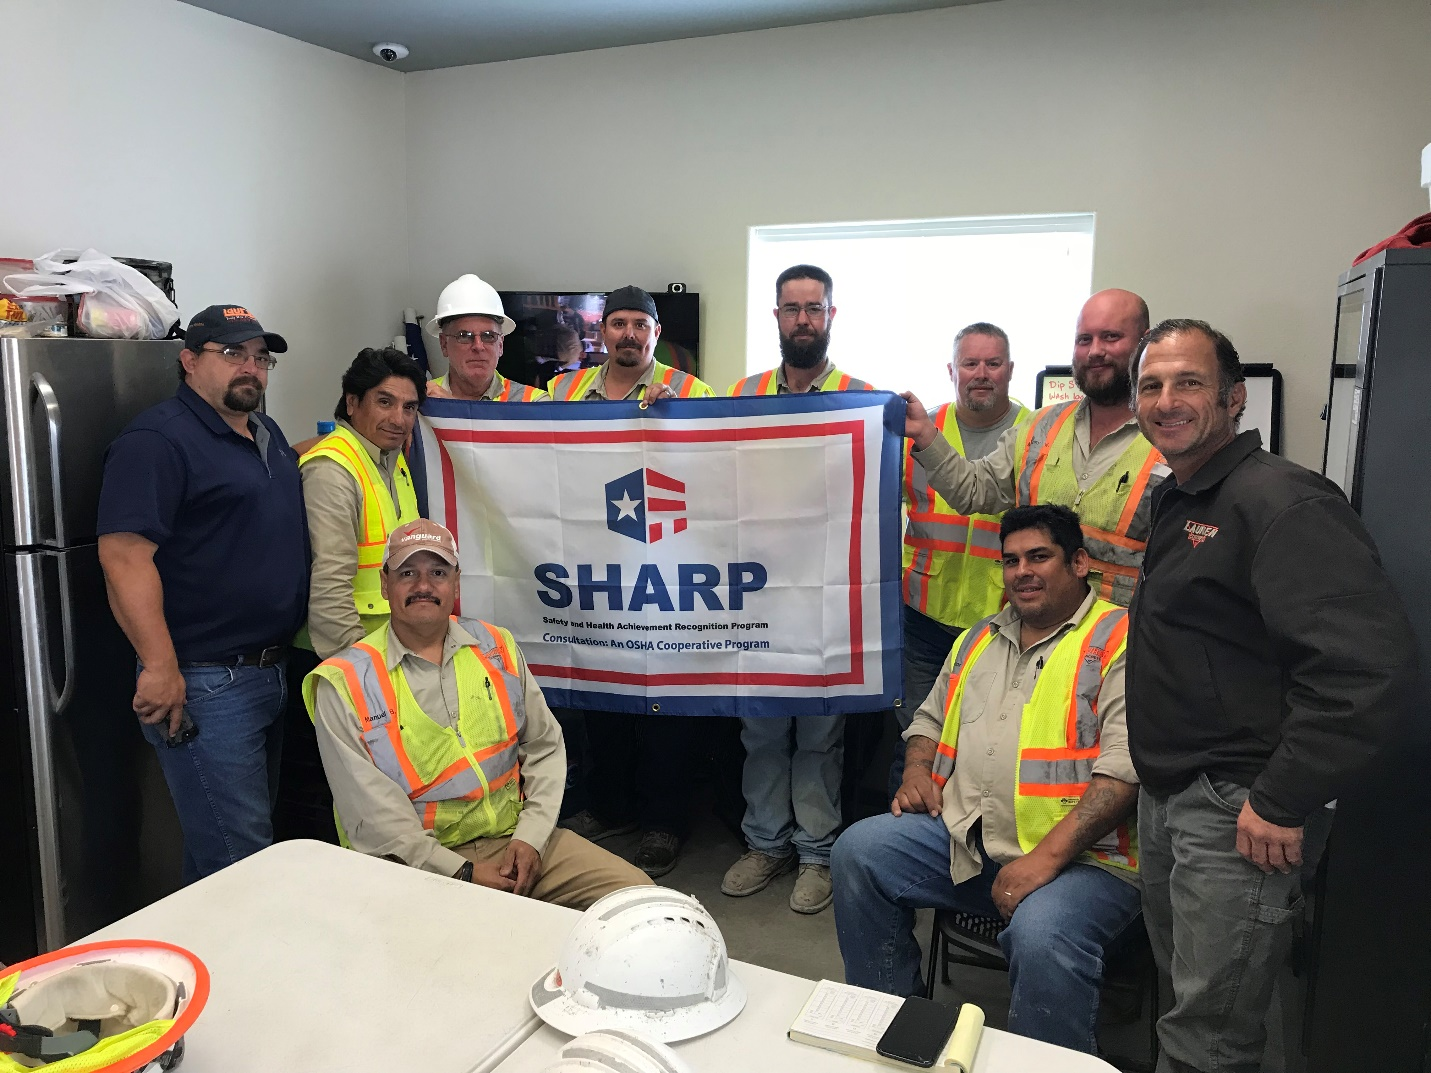 Spicewood Plant SHARP Team <small>Standing (Left to Right): Jimmy Grubbs, Jerry Amaya, Ron Harpster, Larry Stephens, Ryan Gilley, Greg Wicsinger, Anthony West, and Silvio Filipovich. Seated (Left to Right): Manuel Bega and Lozano Salvador</small>